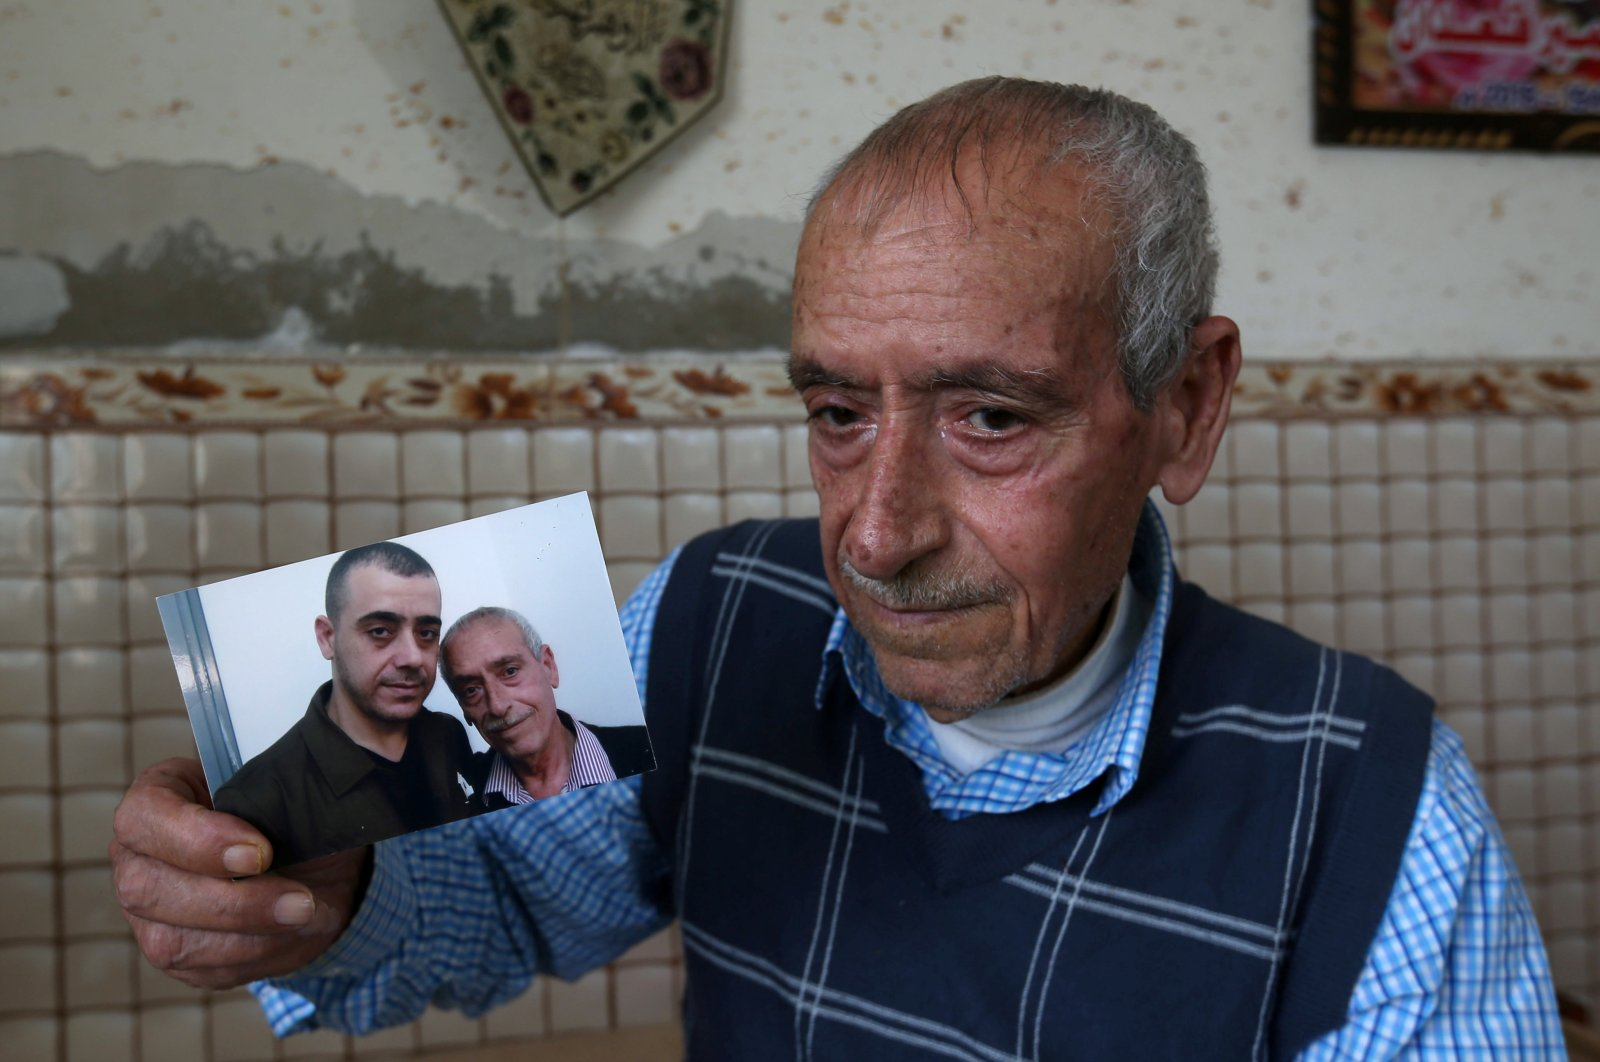 Palestinian man Sameeh Qe'dan, who marks a calendar with a cross to count down the days until his son Abdel-Raouf is released from an Israeli jail, shows a picture of him with Abdel-Raouf, in his home in Rafah in the southern Gaza Strip July 14, 2020. (Reuters Photo)